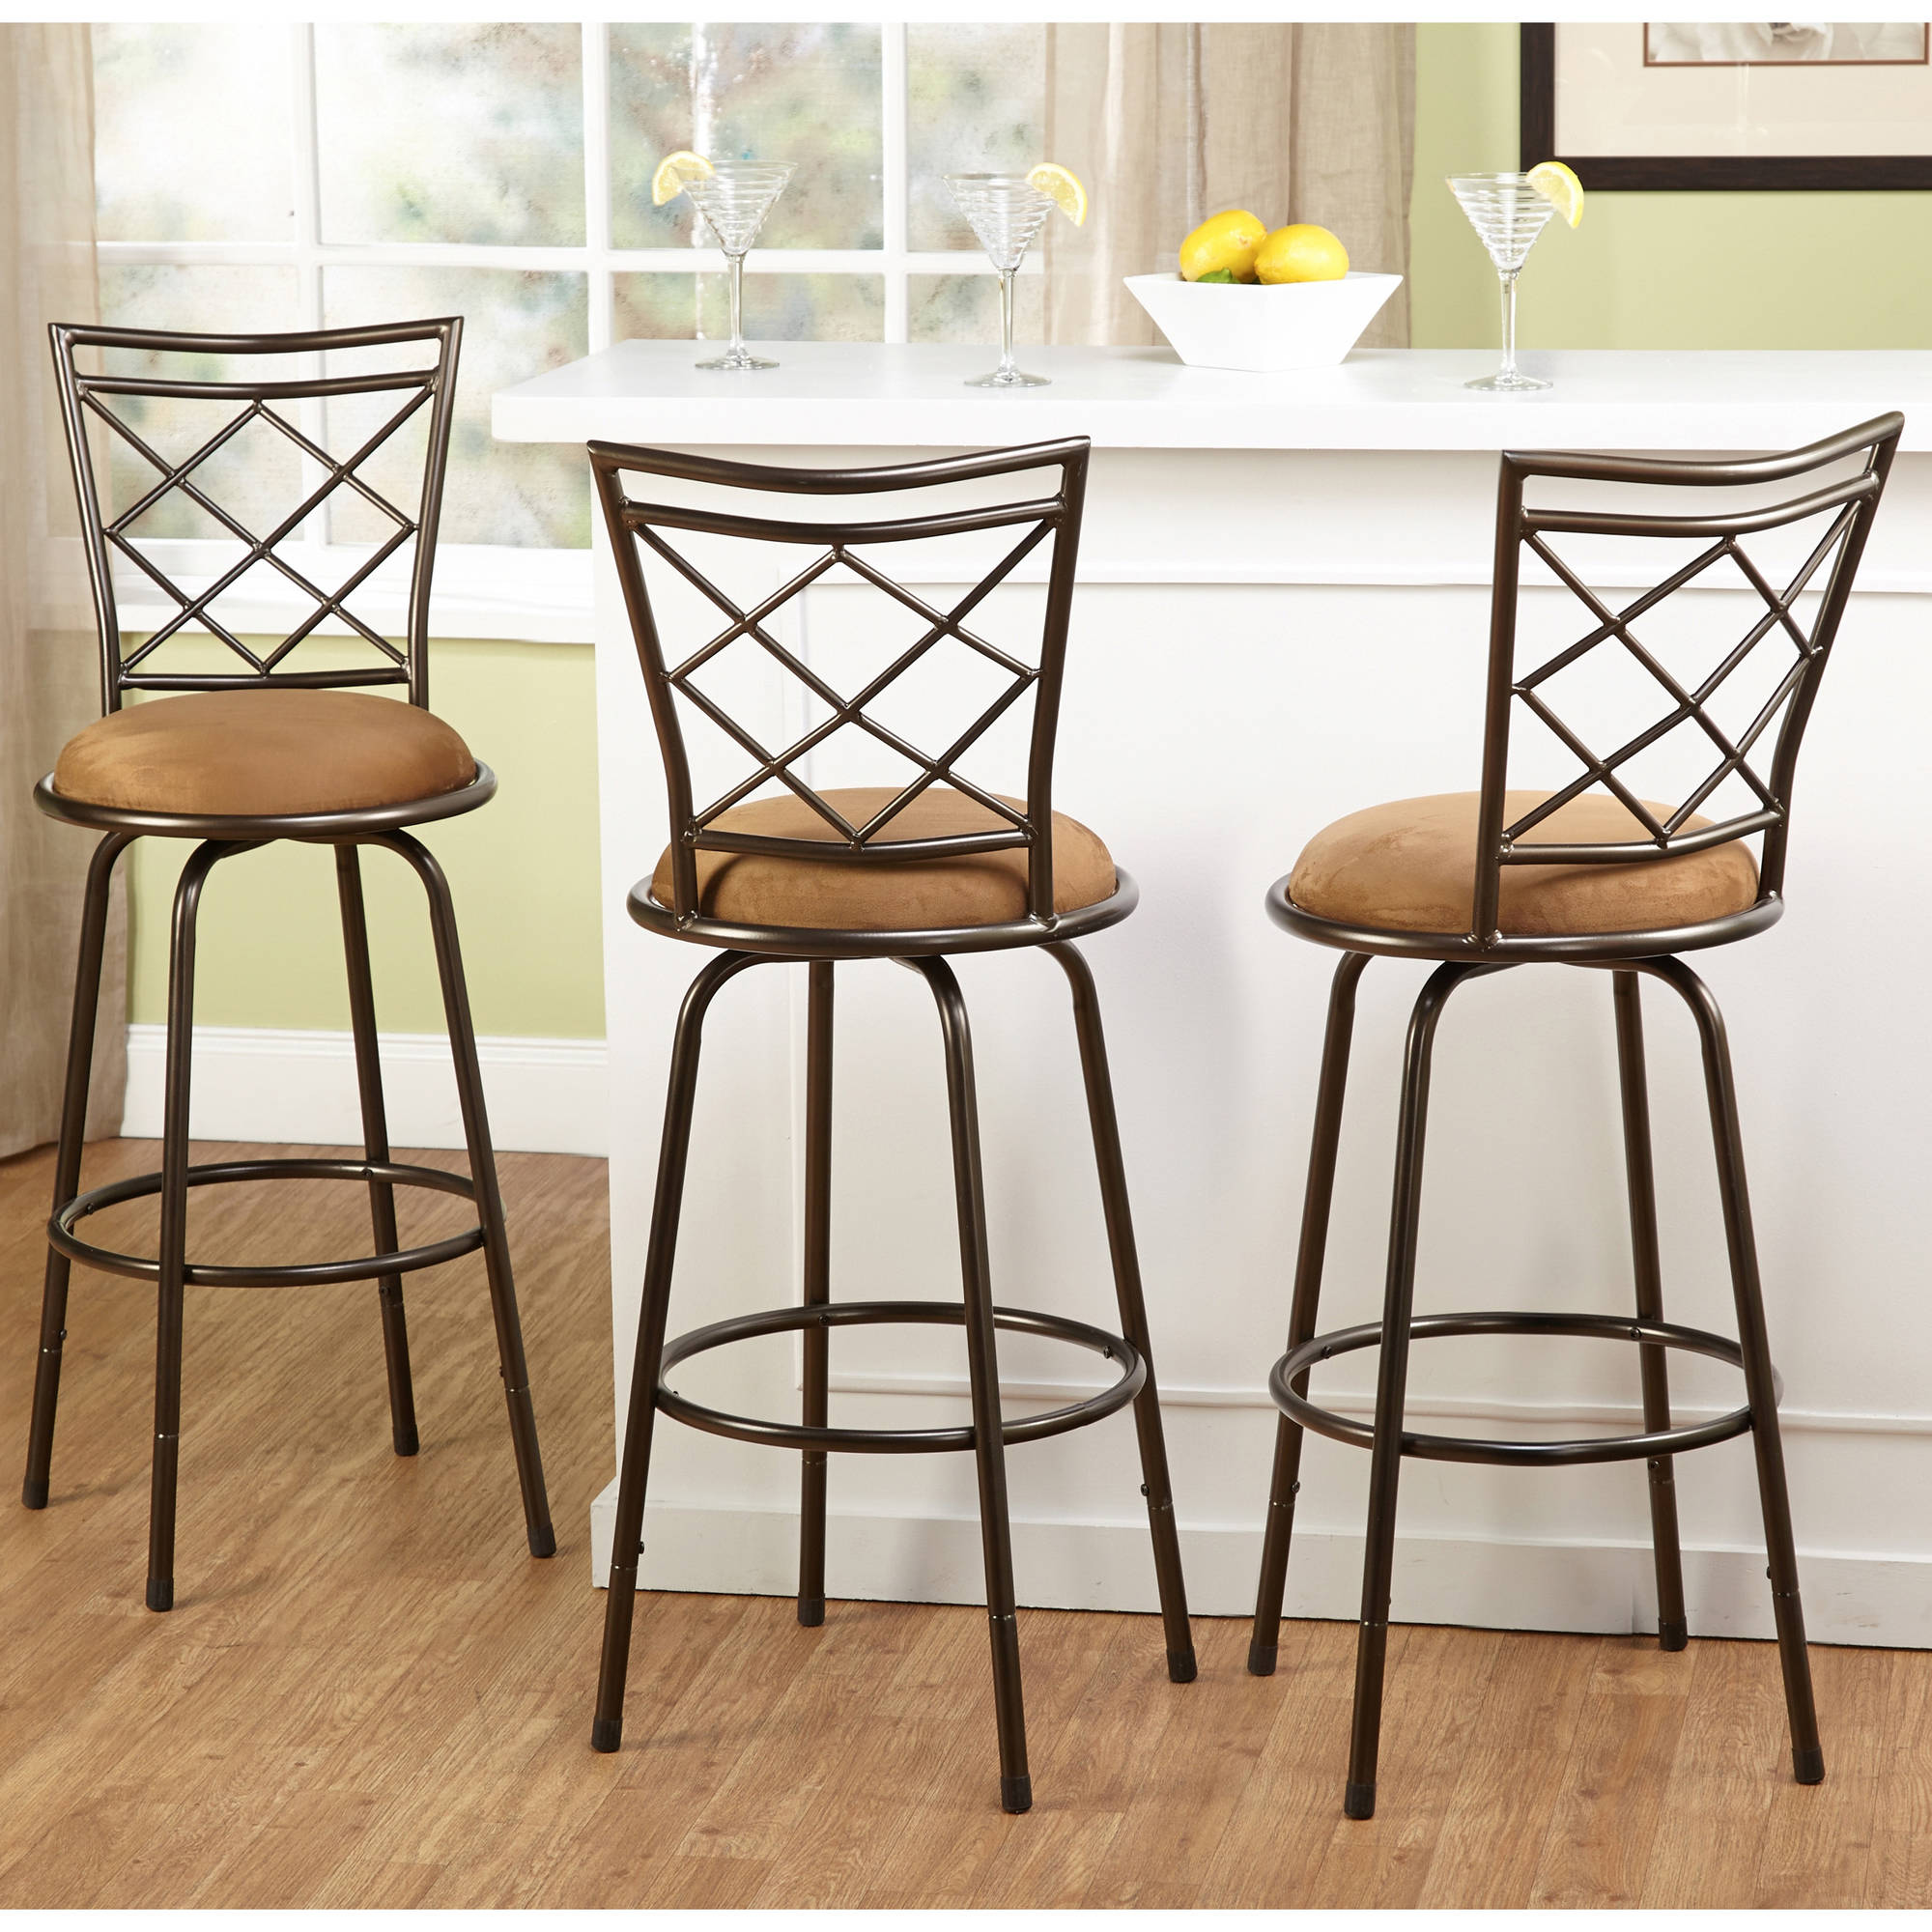 Brilliant Tms Avery Adjustable Height Bar Stool Multiple Colors Set Of 3 Walmart Com Ibusinesslaw Wood Chair Design Ideas Ibusinesslaworg